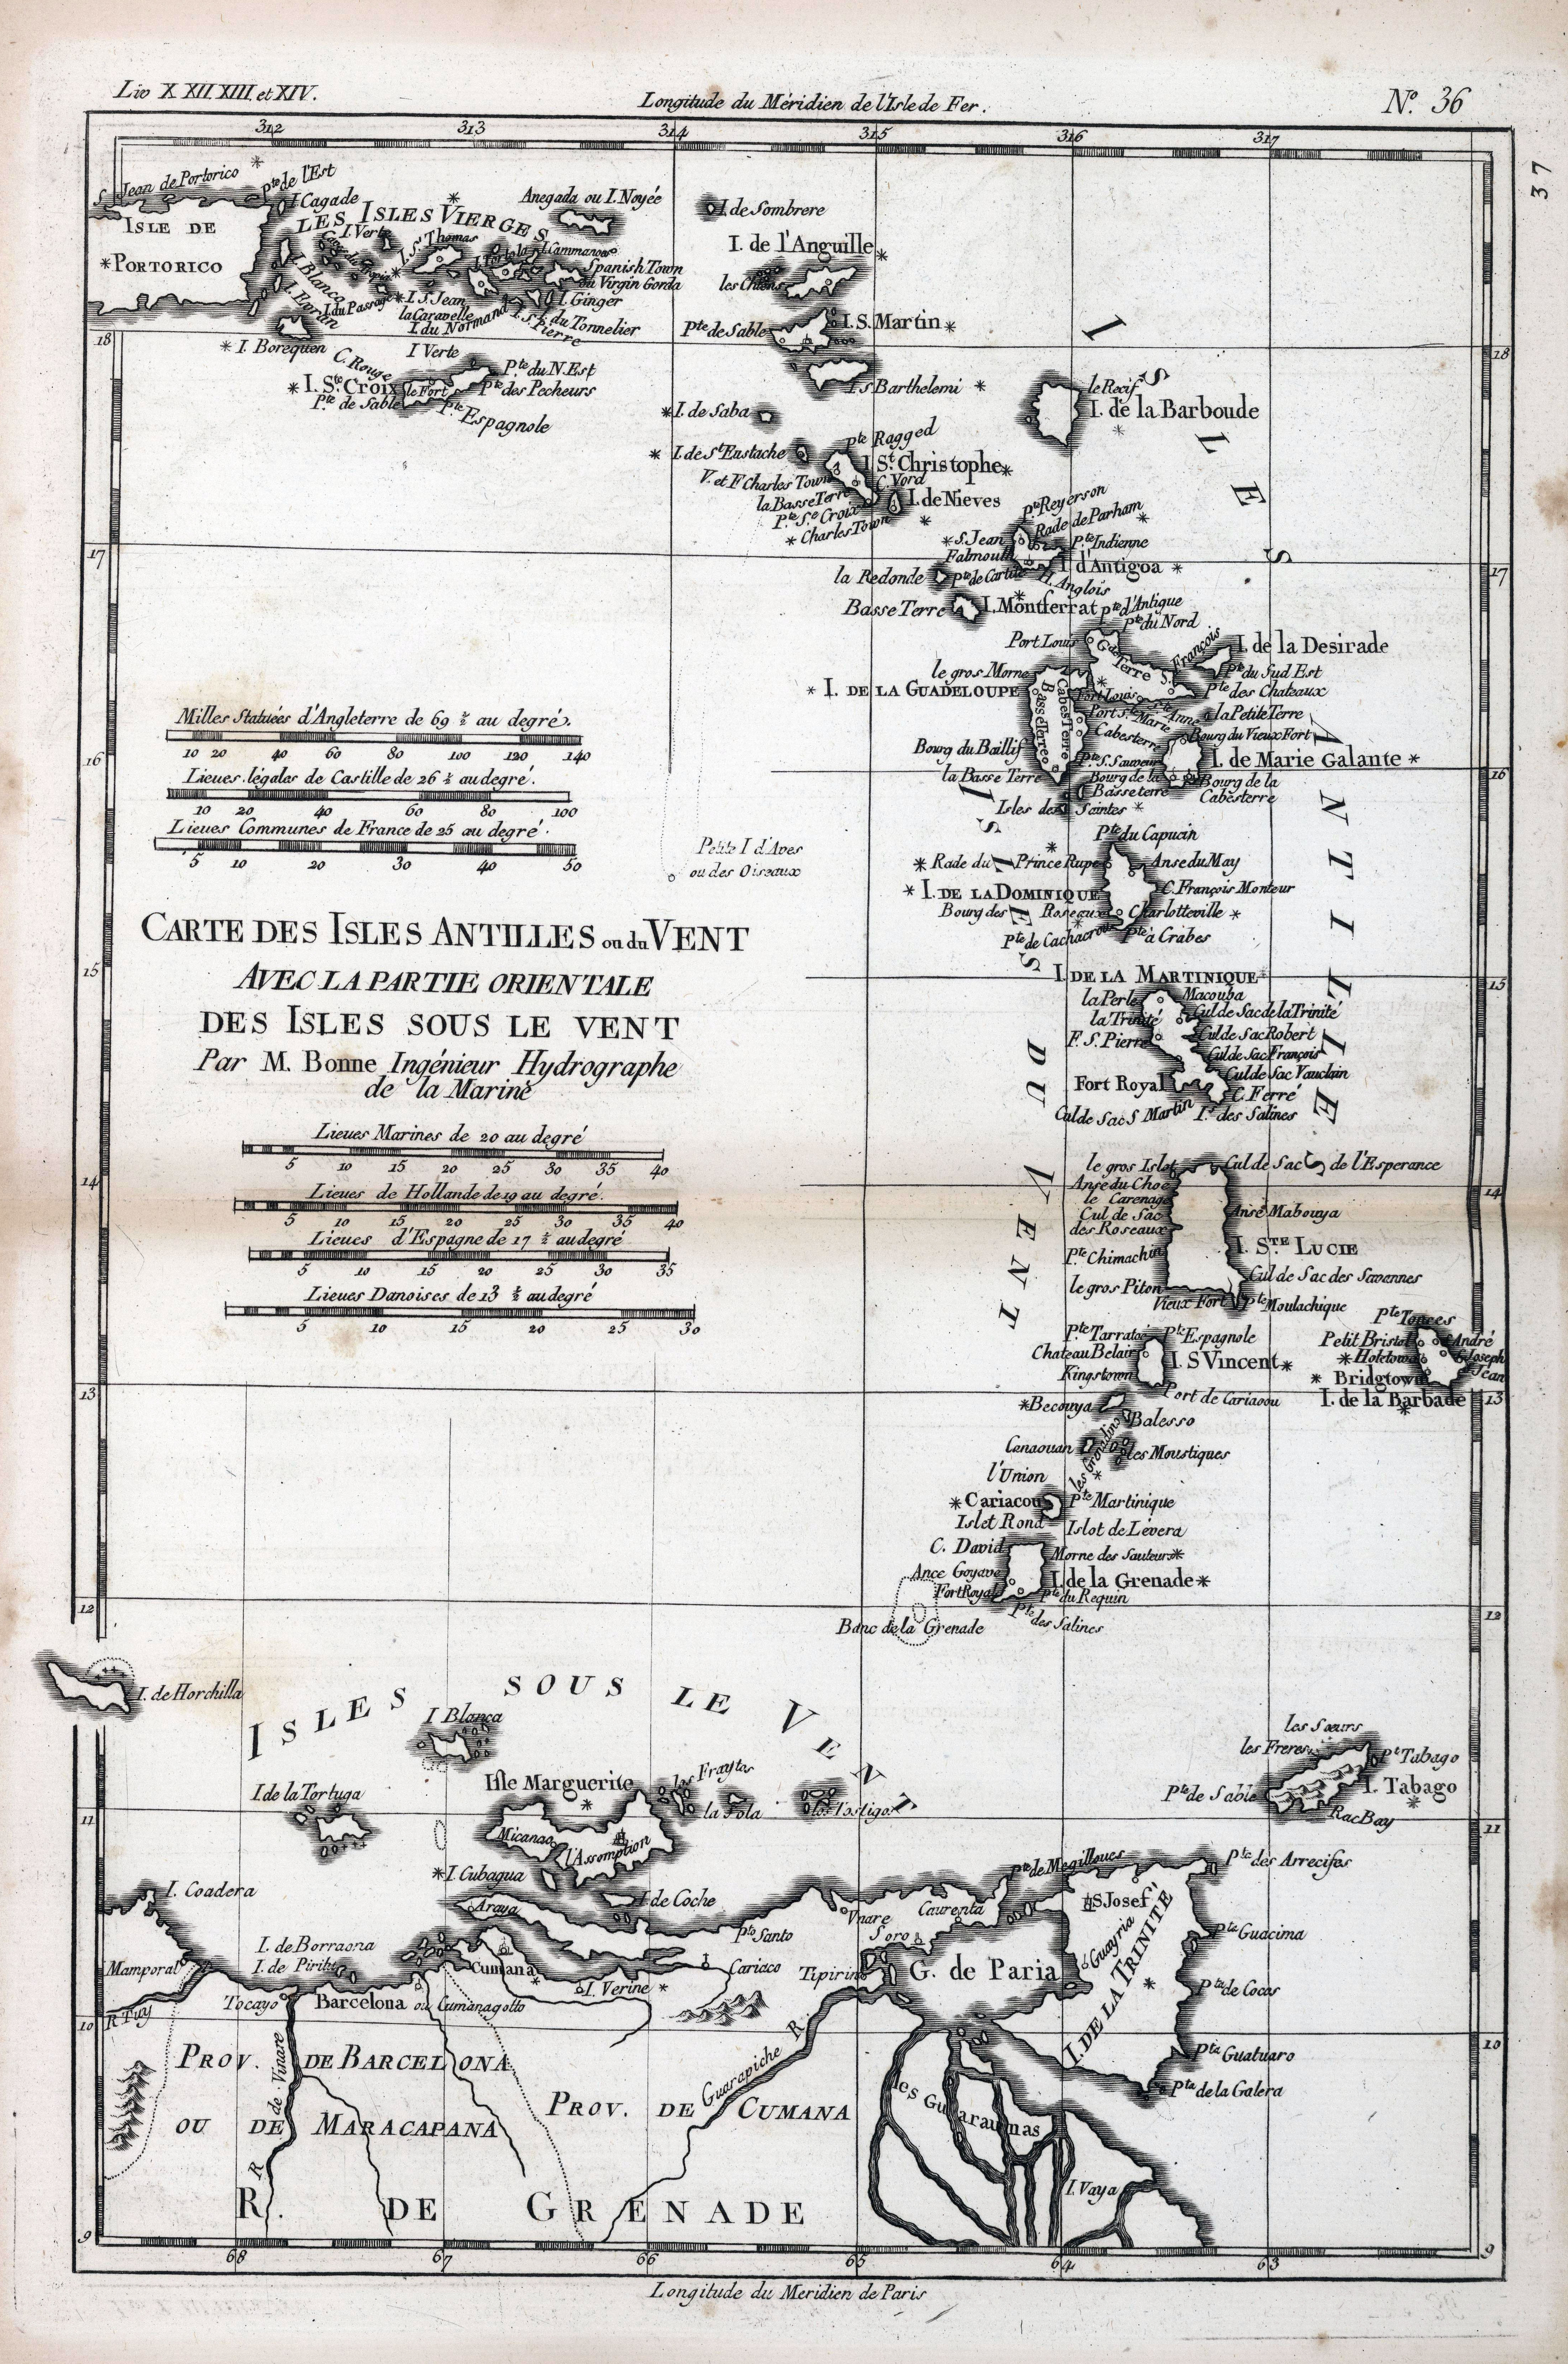 history of trinidad and tobago History of the people of trinidad & tobago has 31 ratings and 4 reviews mike said: an excellent historic text if you choose to read it, you must keep t.